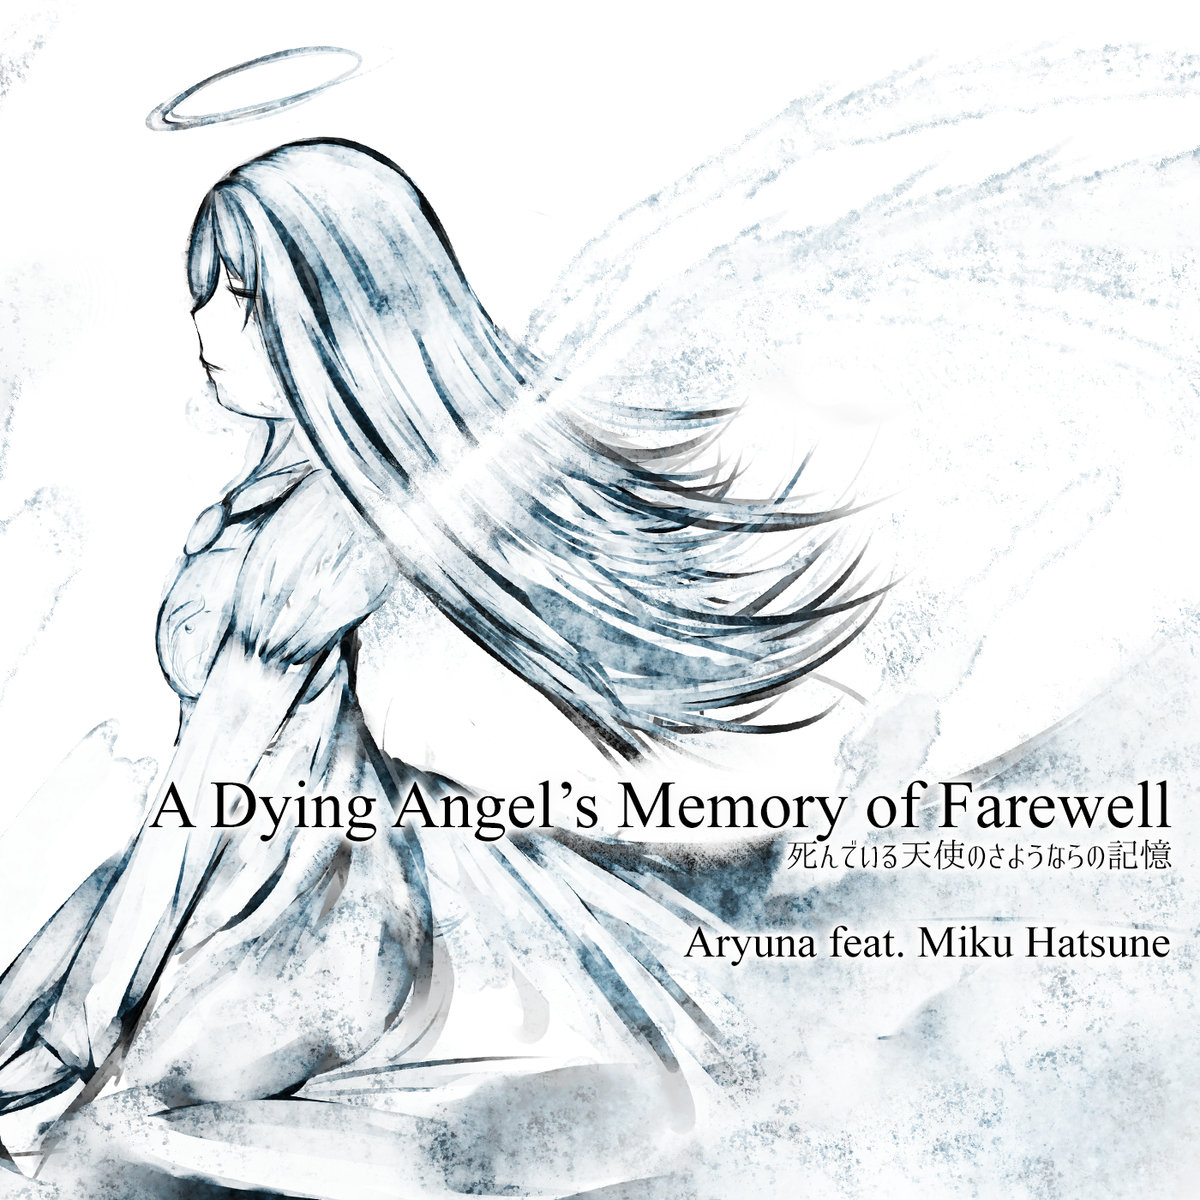 A Dying Angel's Memory of Farewell